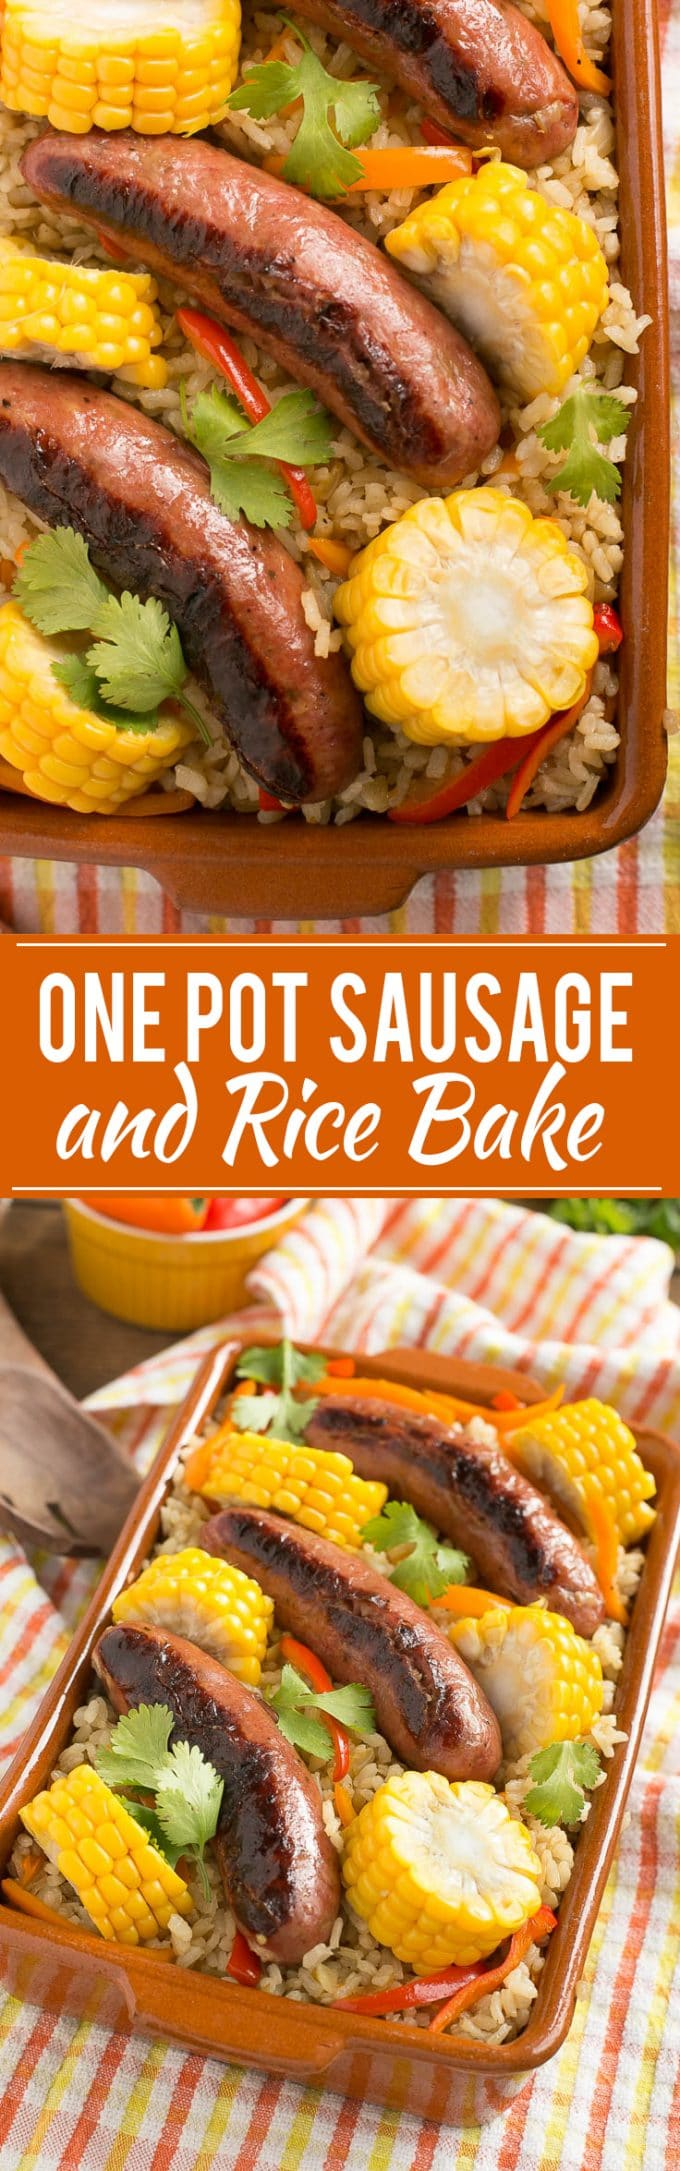 One Pot Sausage and Rice Casserole Recipe | One Pot Casserole | Sausage and Rice Casserole | Easy Sausage and Rice Casserole | Best One Pot Rice Casserole | One Pot Sausage and Rice Bake Recipe